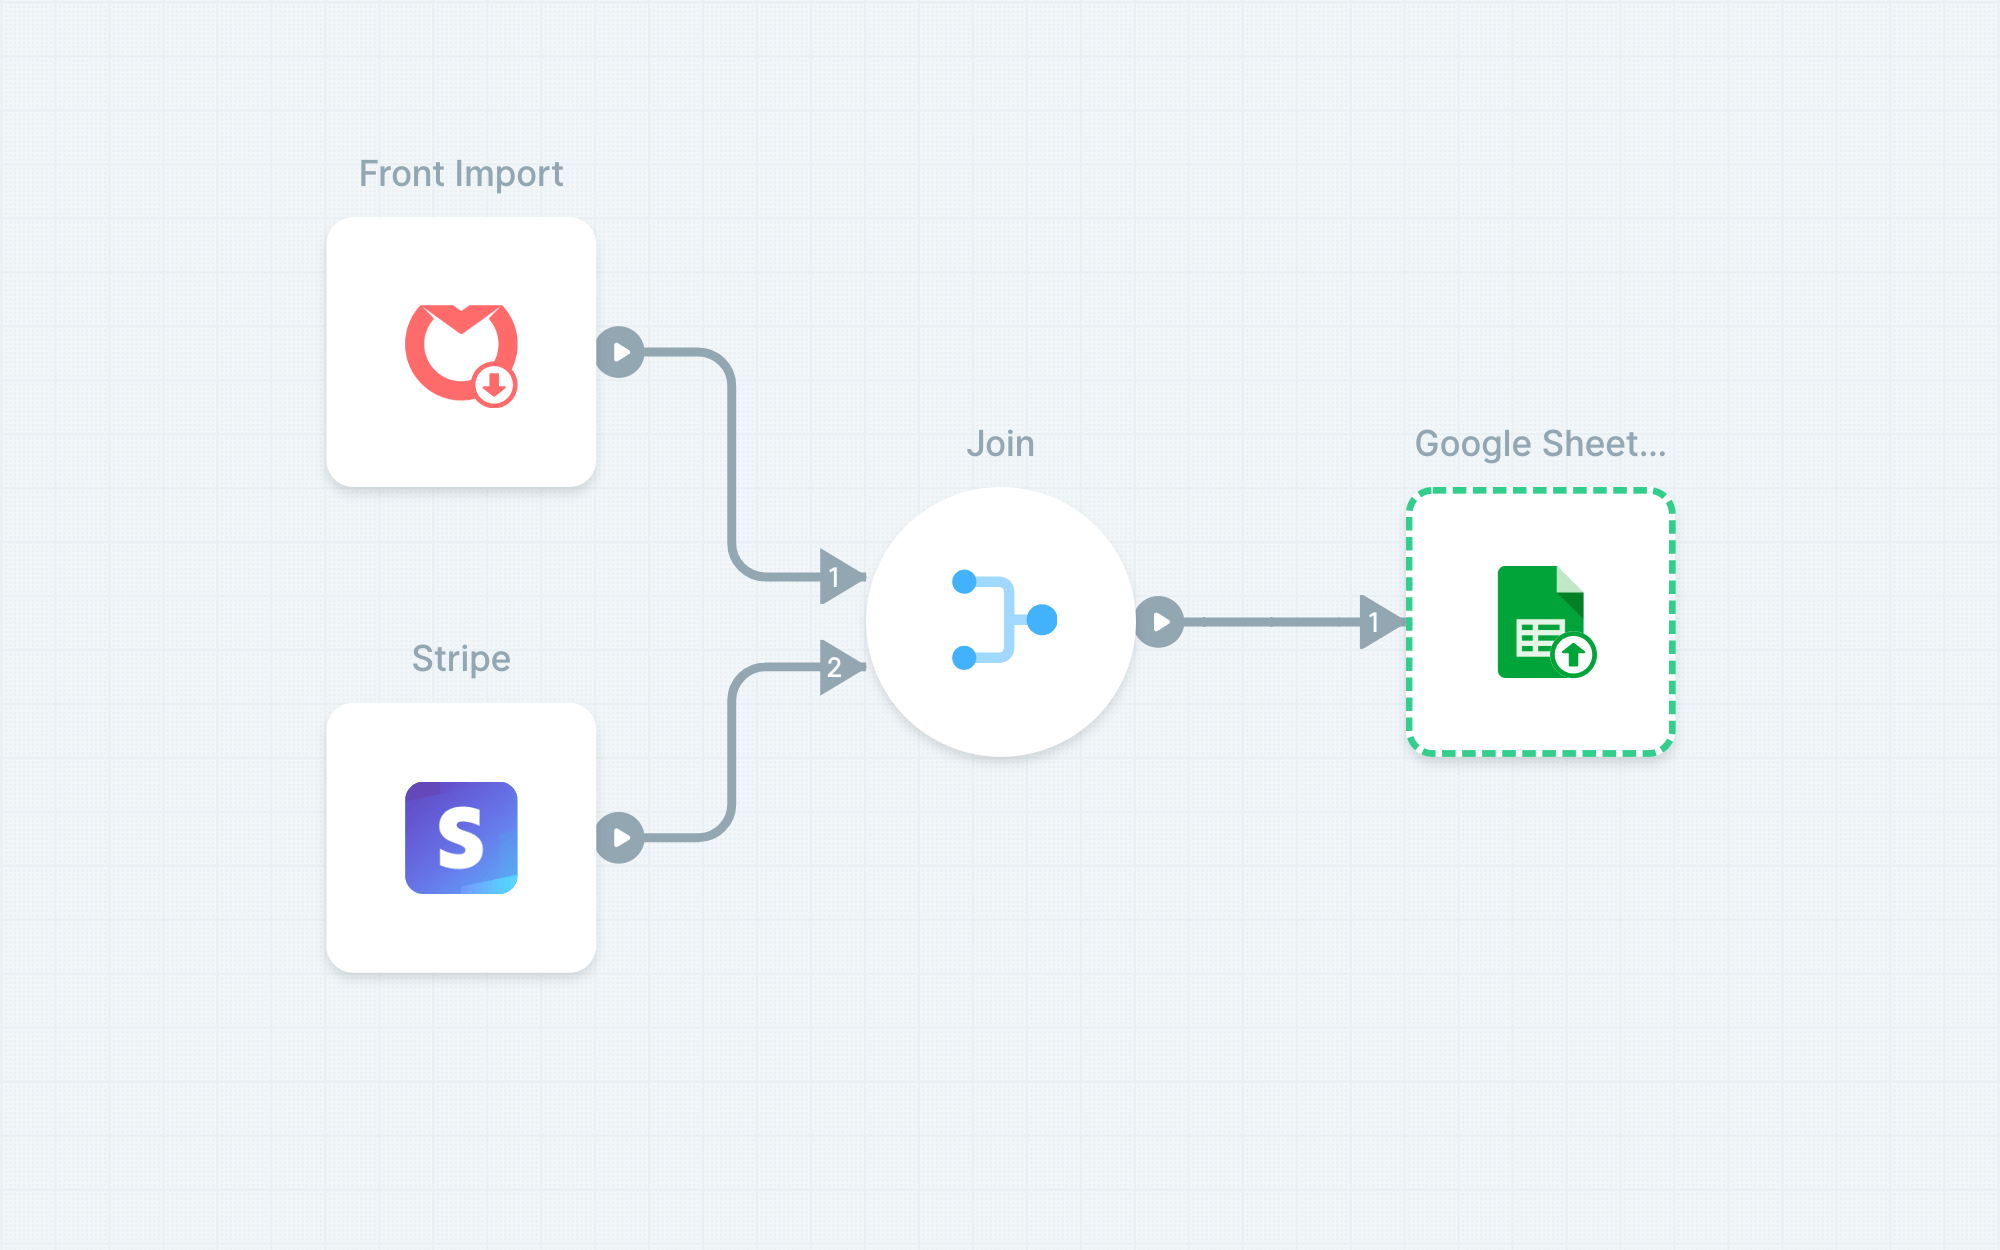 Attribute customer support work across Front and Stripe